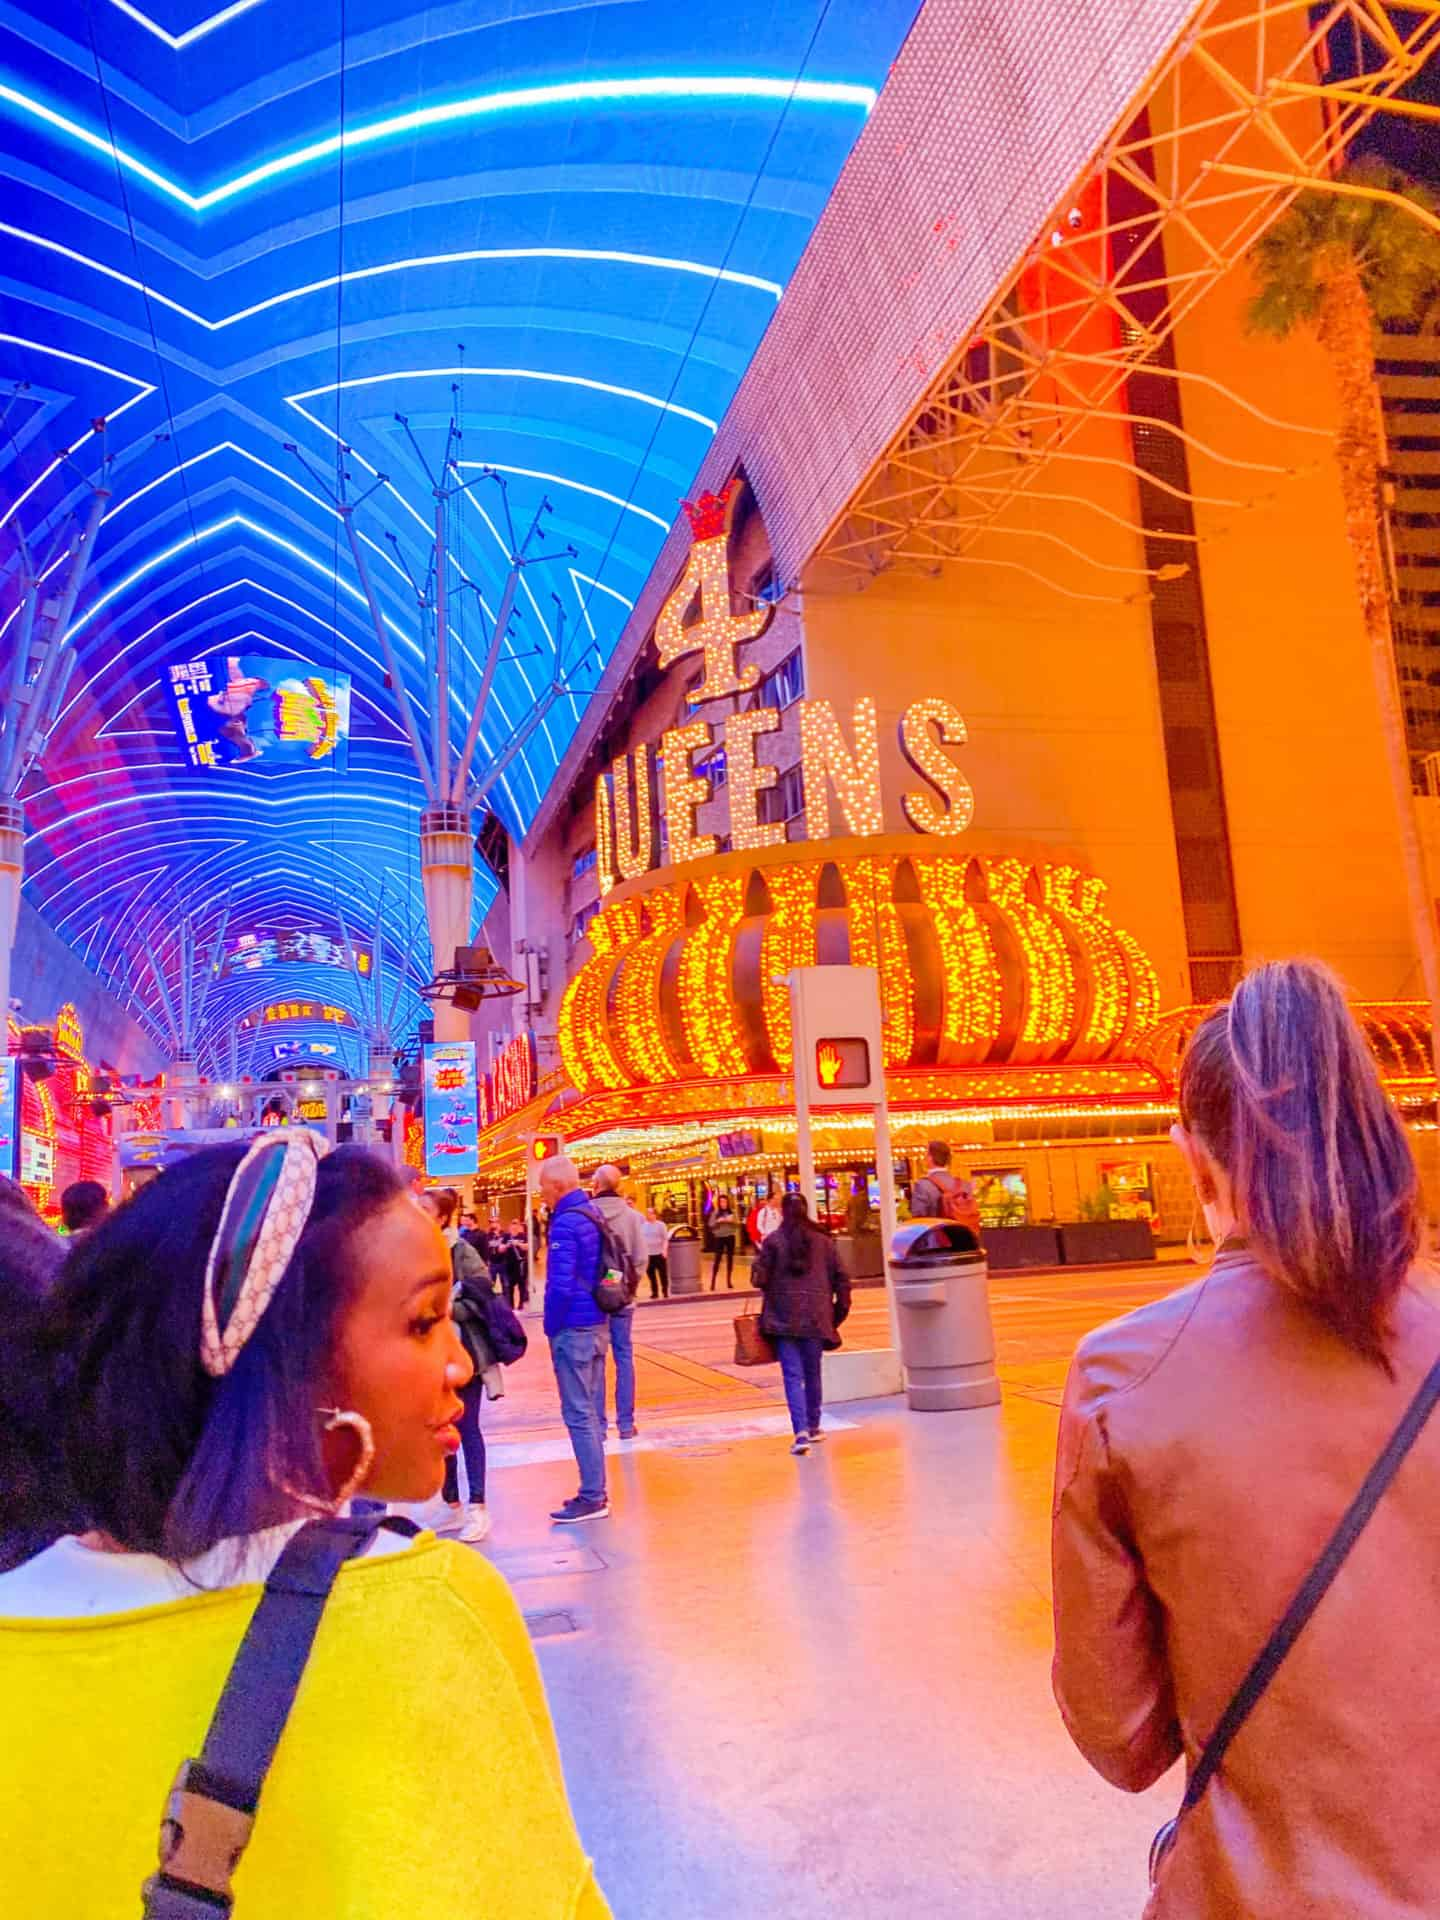 DTLV Fremont Street Experience